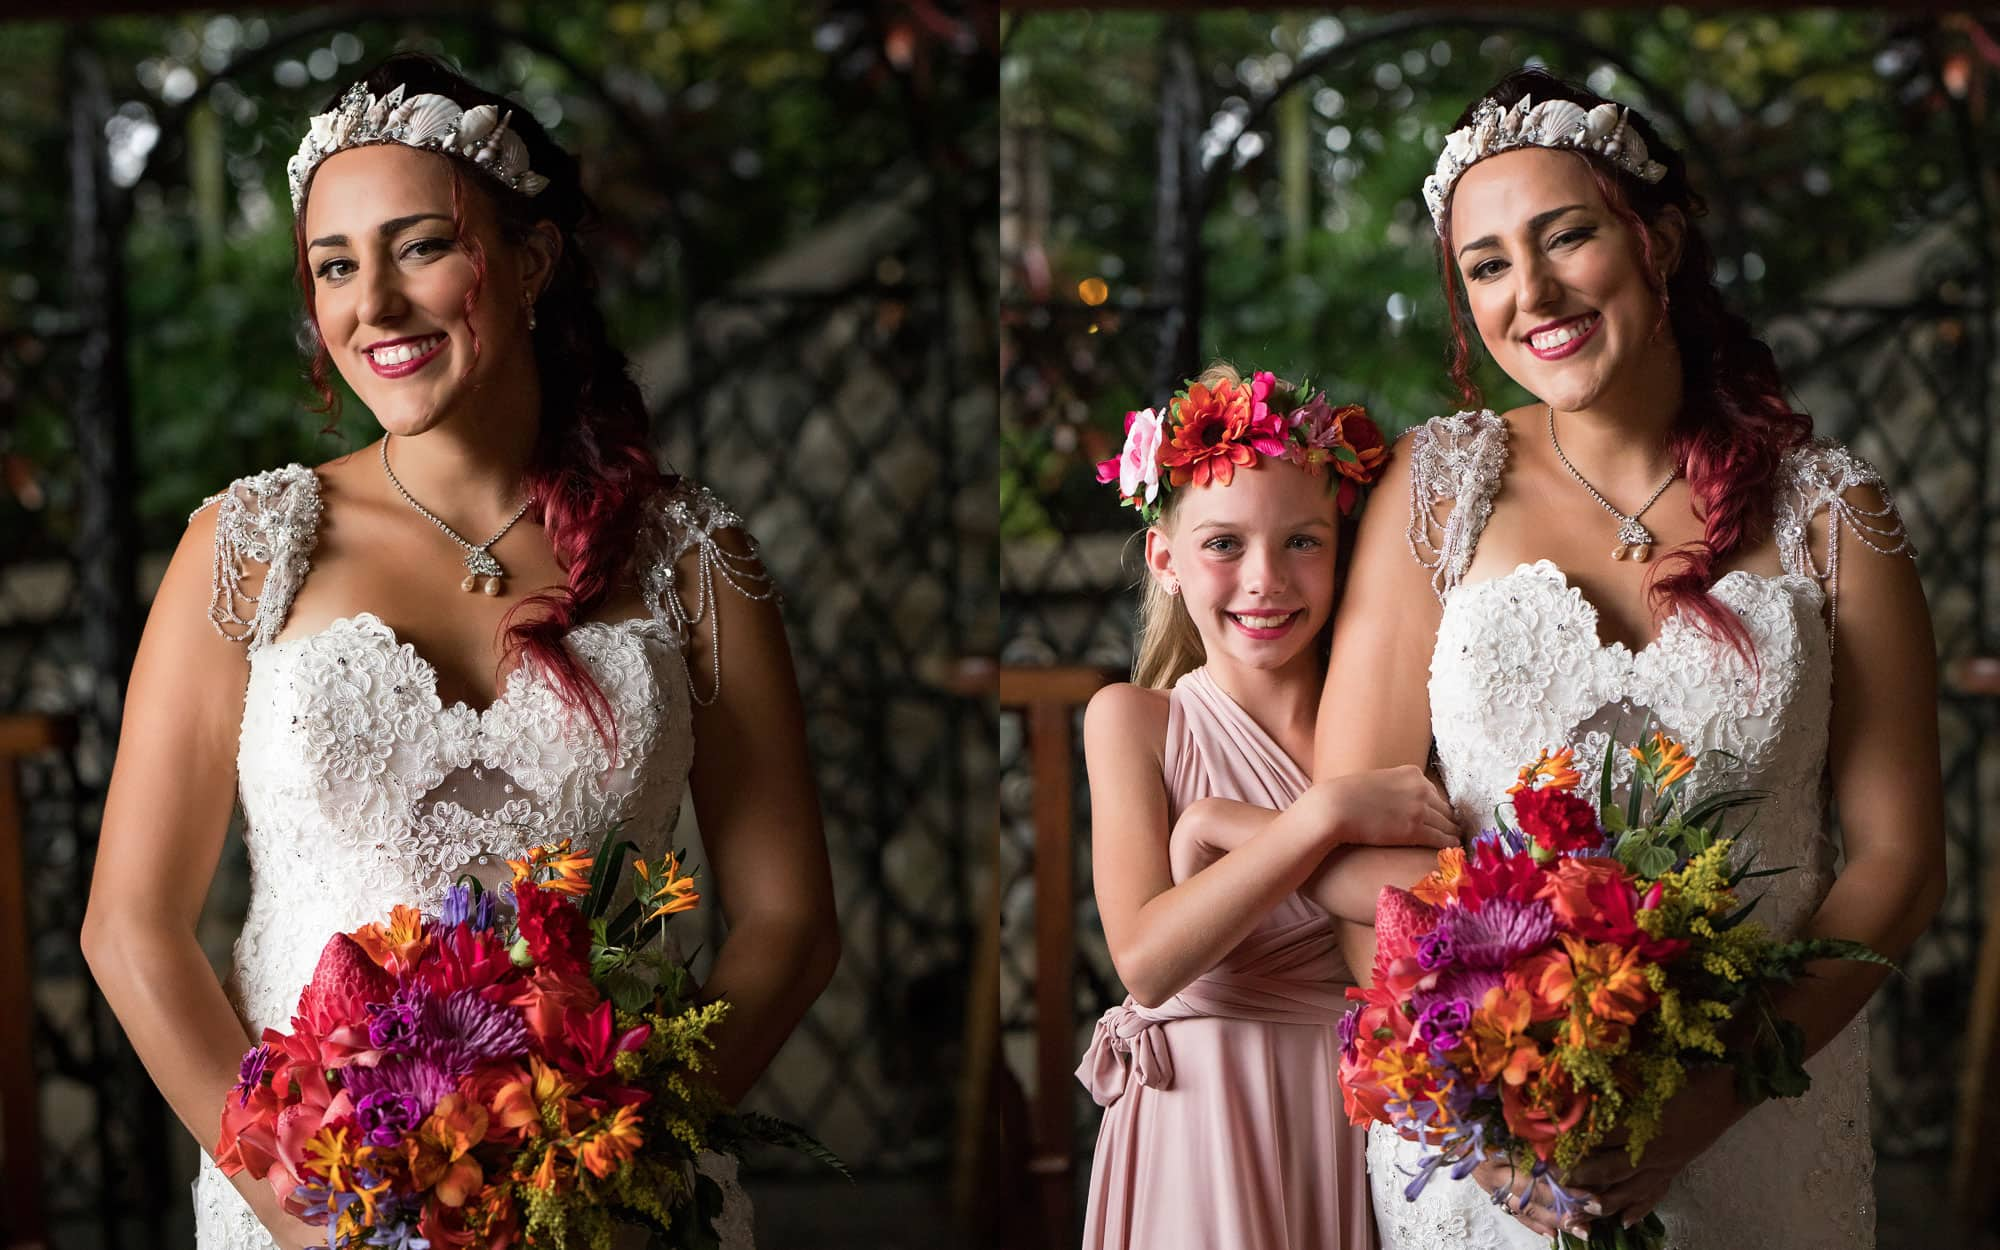 Loves blooms like the lovely flowers in the bride's hands